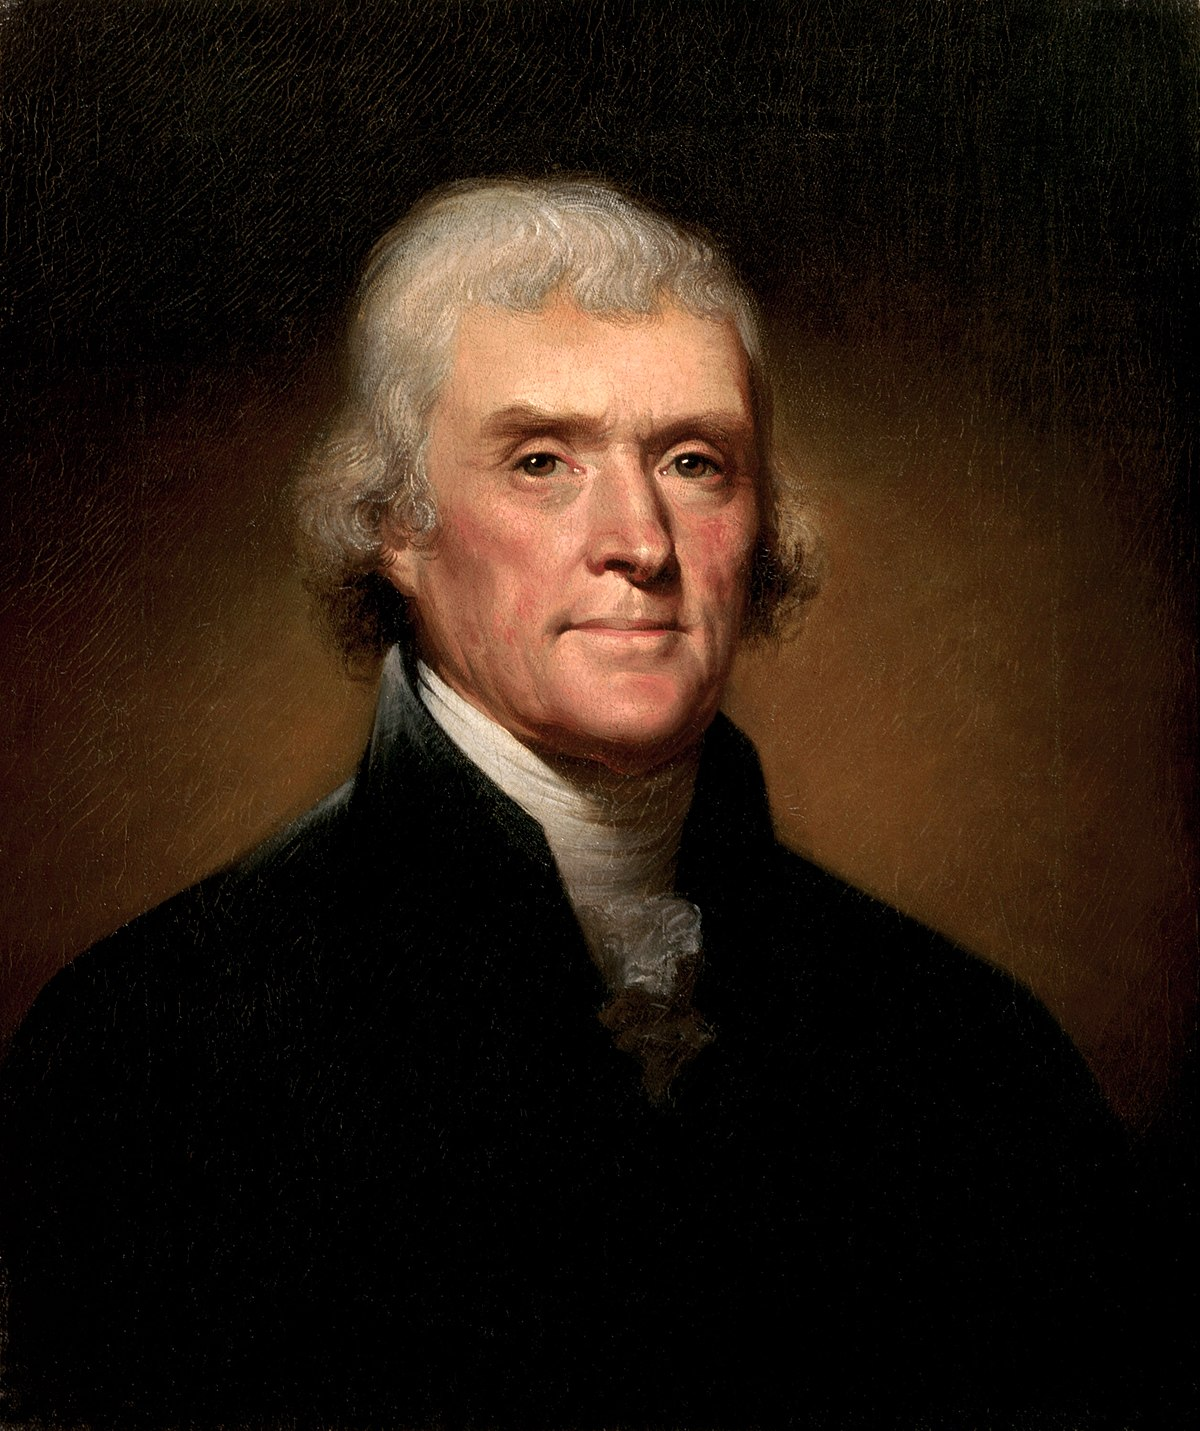 thomas jefferson vs alexander hamilton essay 91 121 113 106 thomas jefferson vs alexander hamilton essay